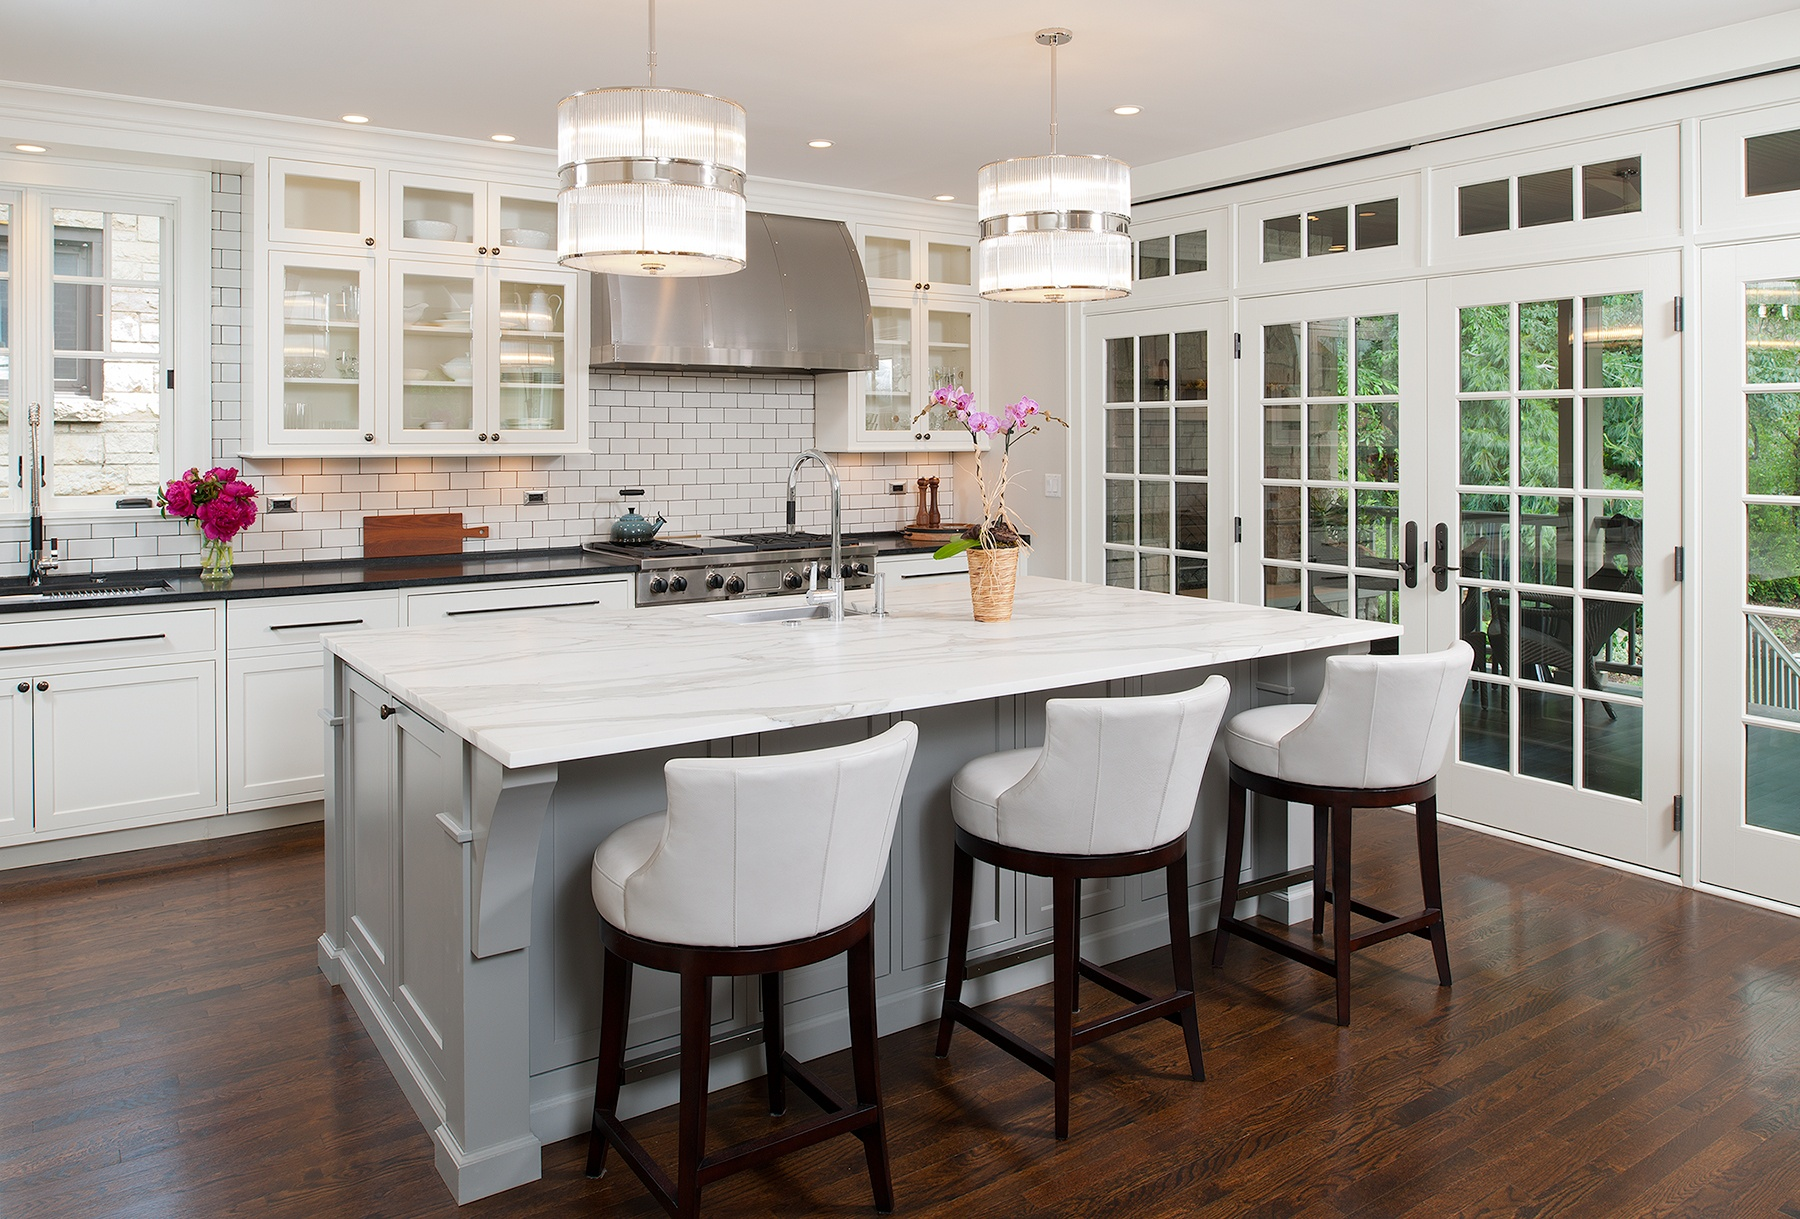 Kitchen Remodeling in Pittsburgh u2013 What You Need to Know & Home Remodeling Blog | Master Remodelers Inc. | kitchen remodel